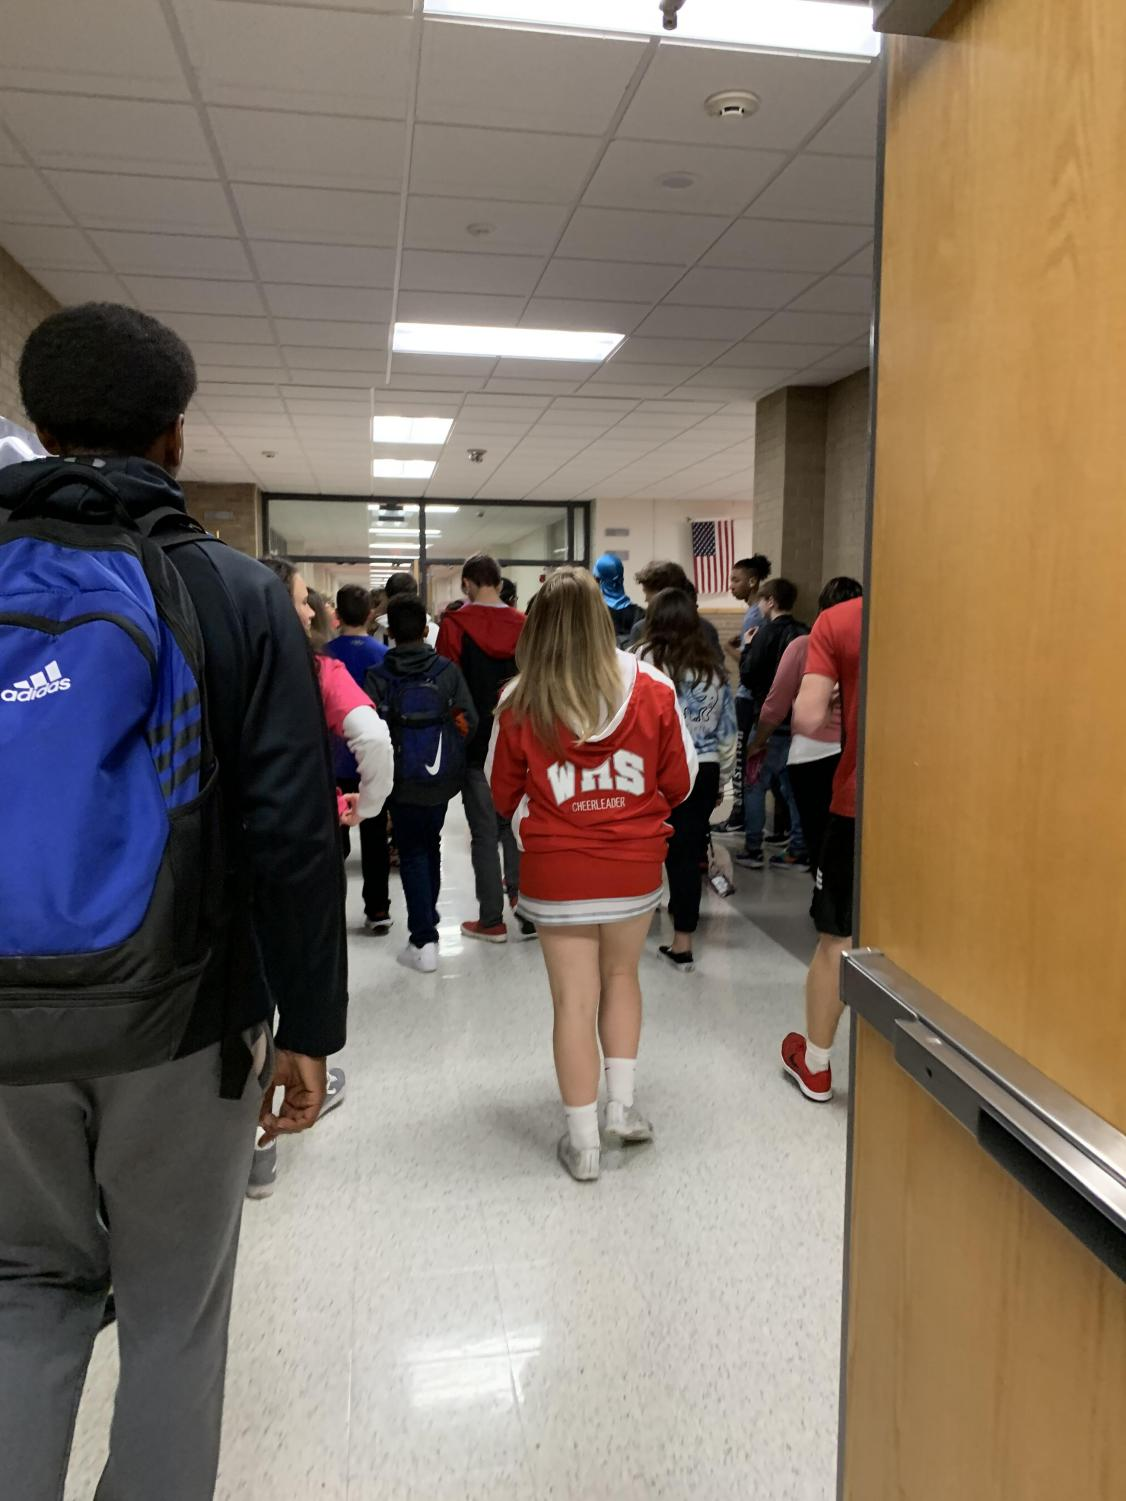 Students walk through the hallways to their second block class after lunch. Hallways are seemingly cramped with students trying to get back to class after having 25 minutes out of the classroom for lunch.